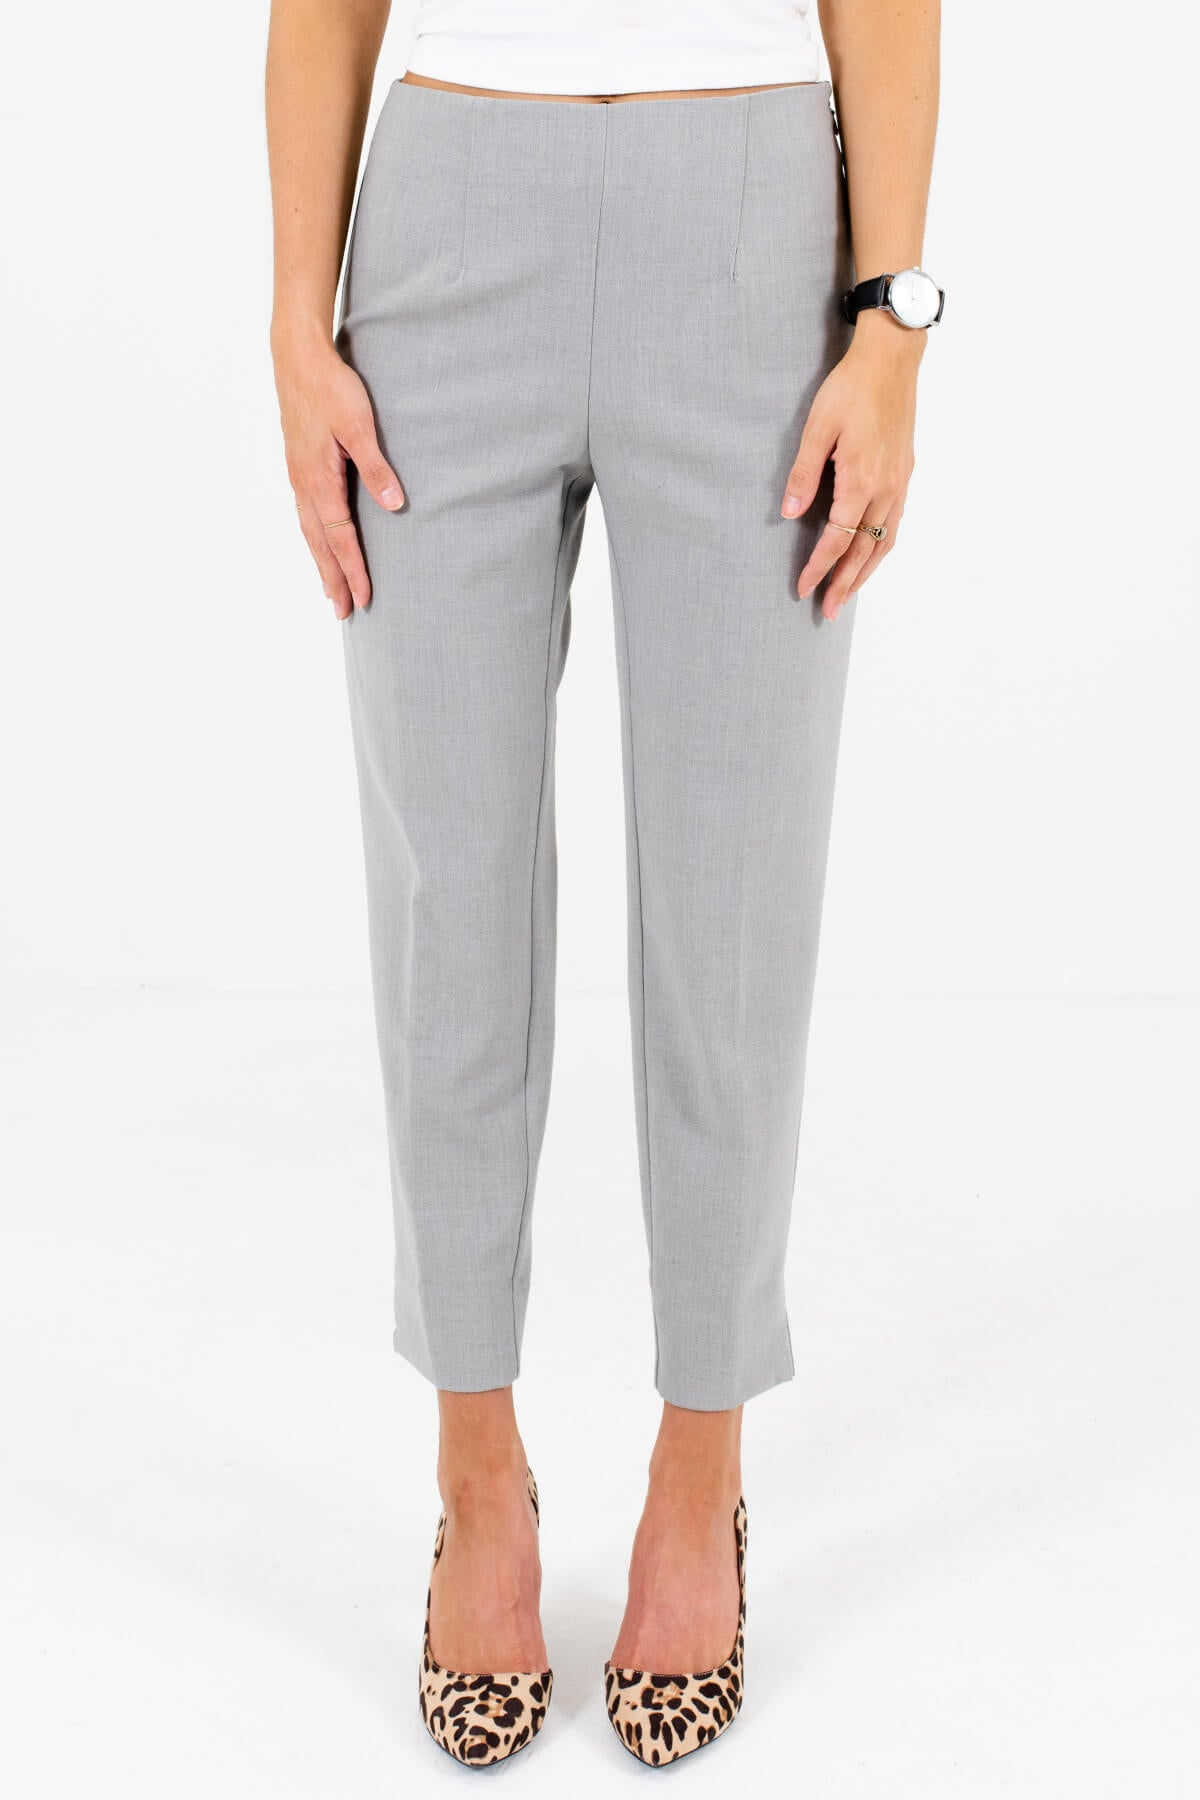 Heather Gray Business Casual Boutique Slack Pants for Women